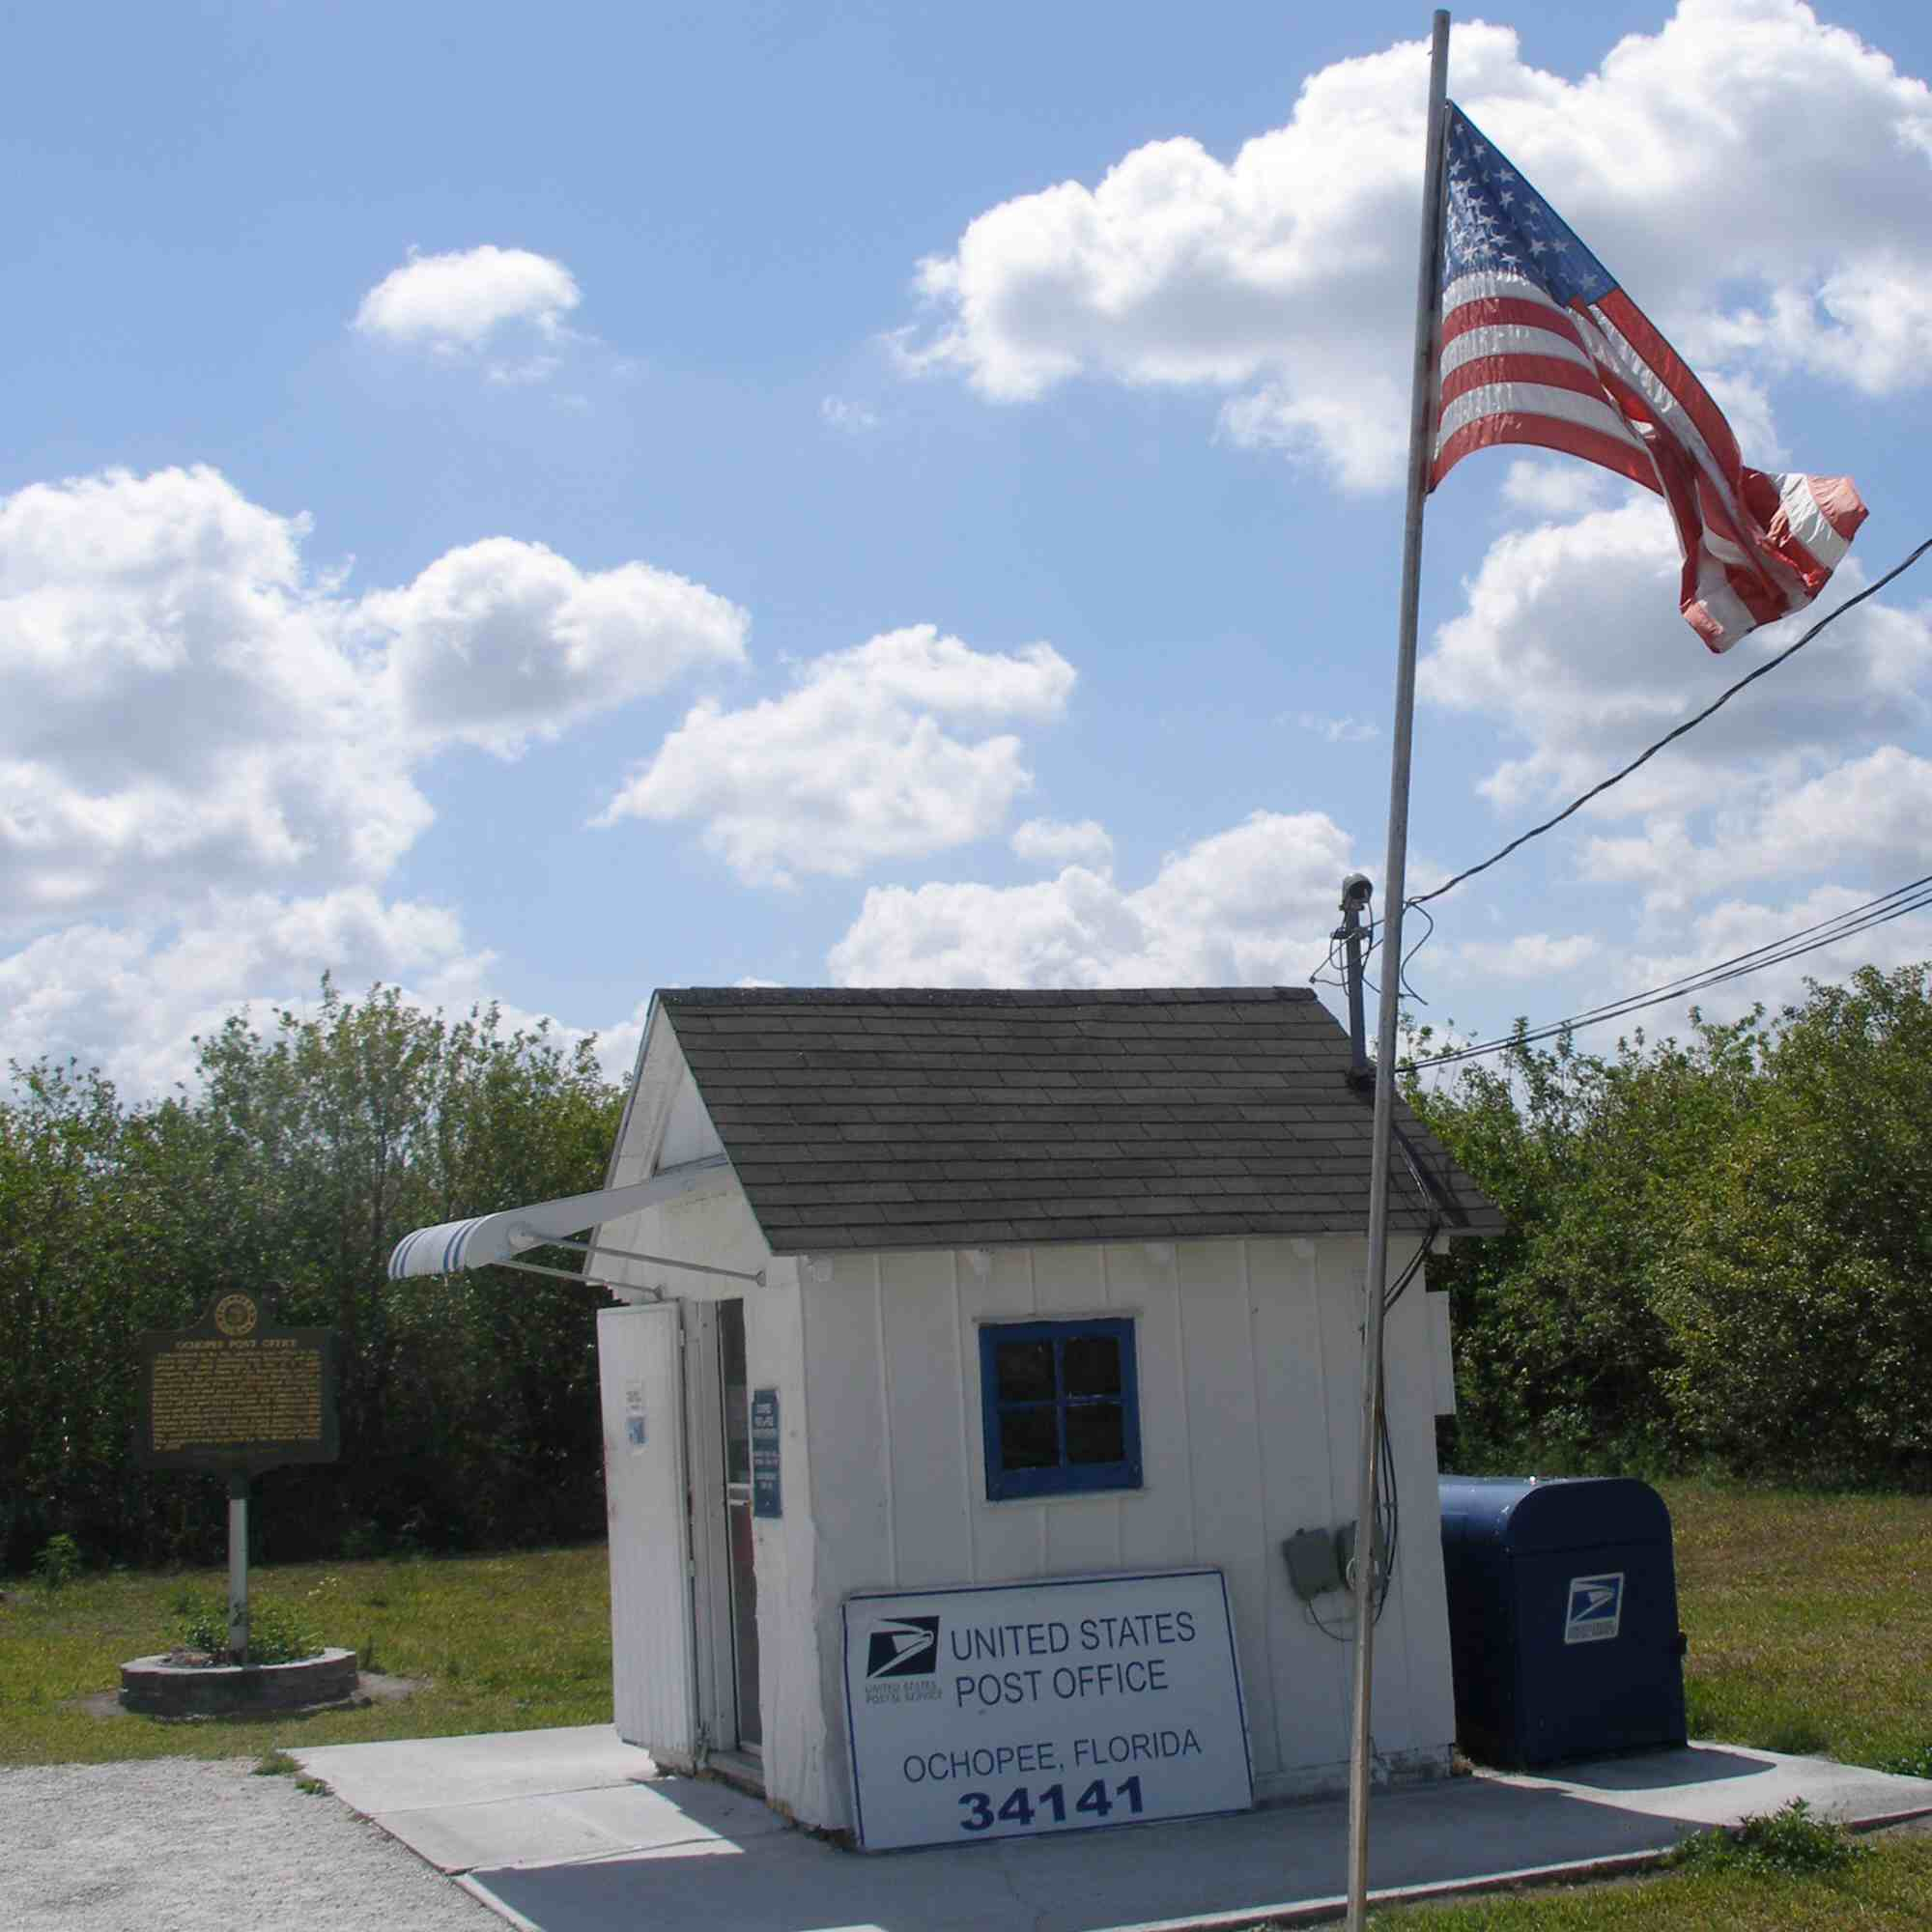 Photo of small, white building, postal boxes, sign, U.S. flag, and historical marker.